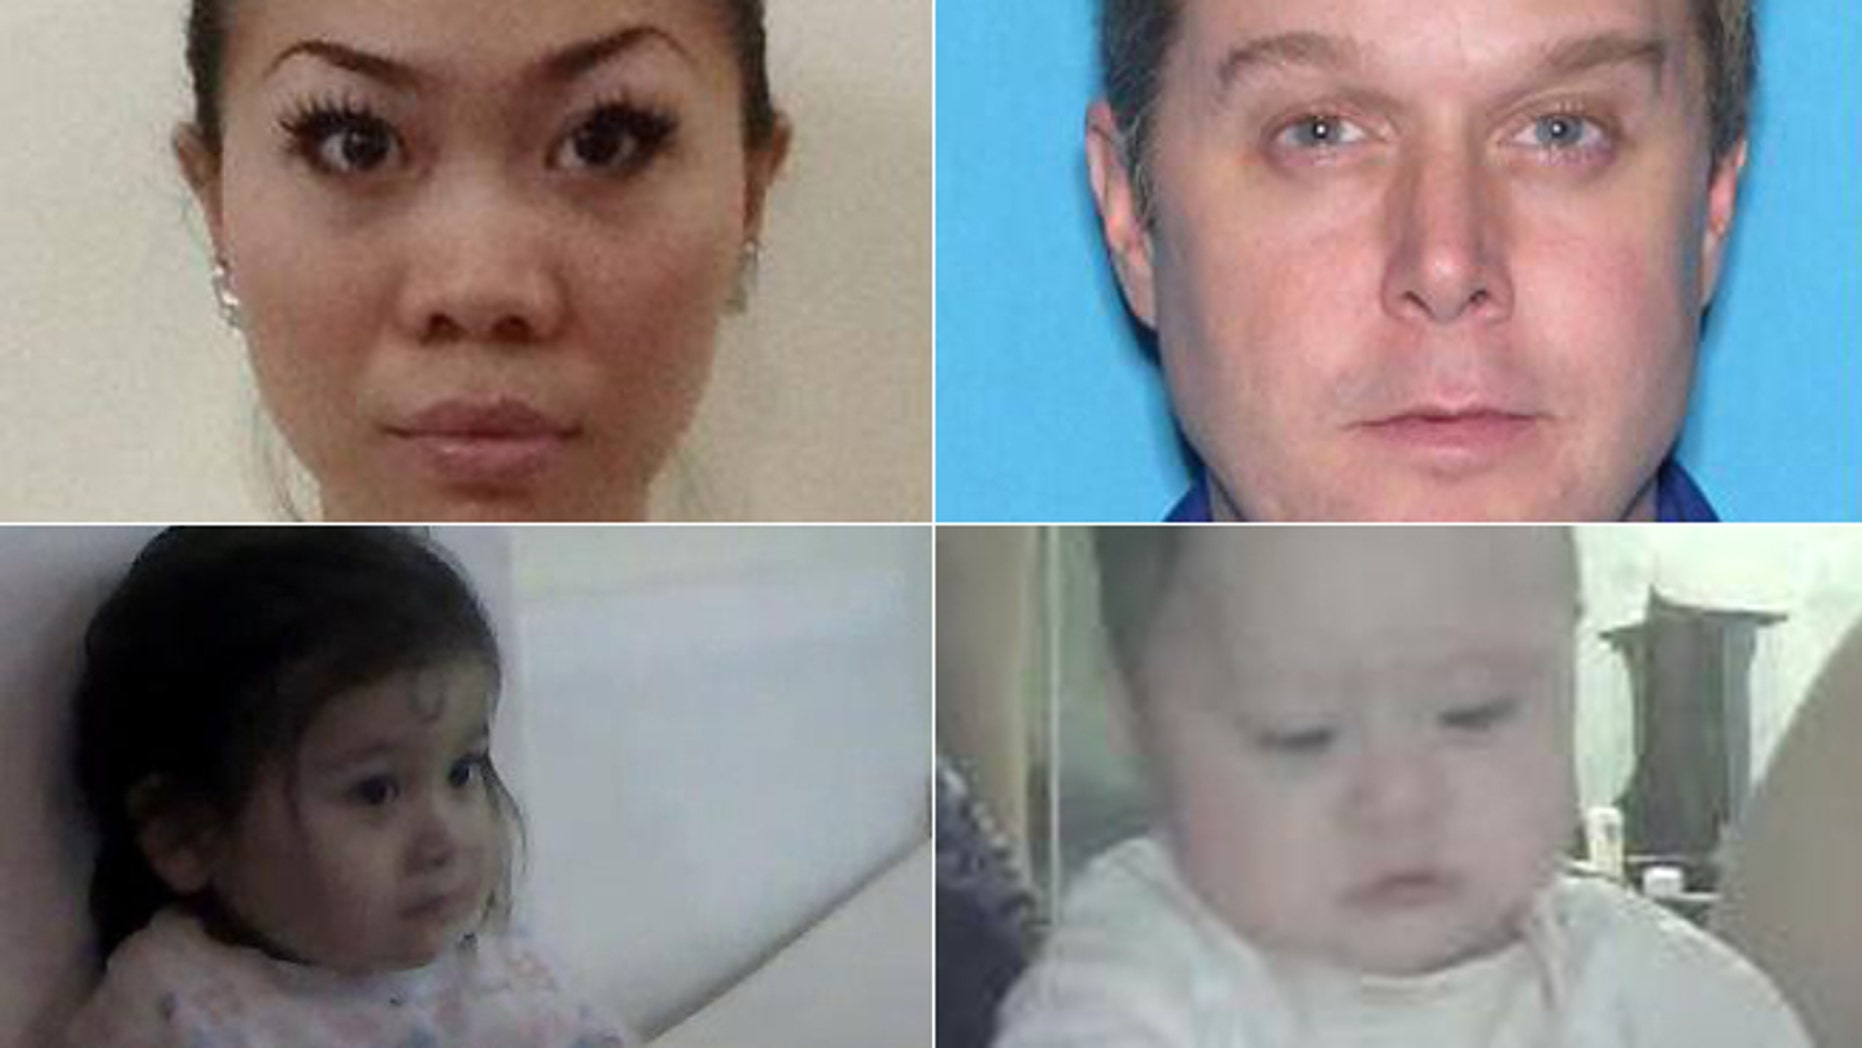 Mai Thi Tuyet Dang, top left, James Firth, and children Chieu 'Kristen' Quan Firth, bottom left, and Trieu 'Kiah' Co Firth were reported missing Nov. 30, 2012.